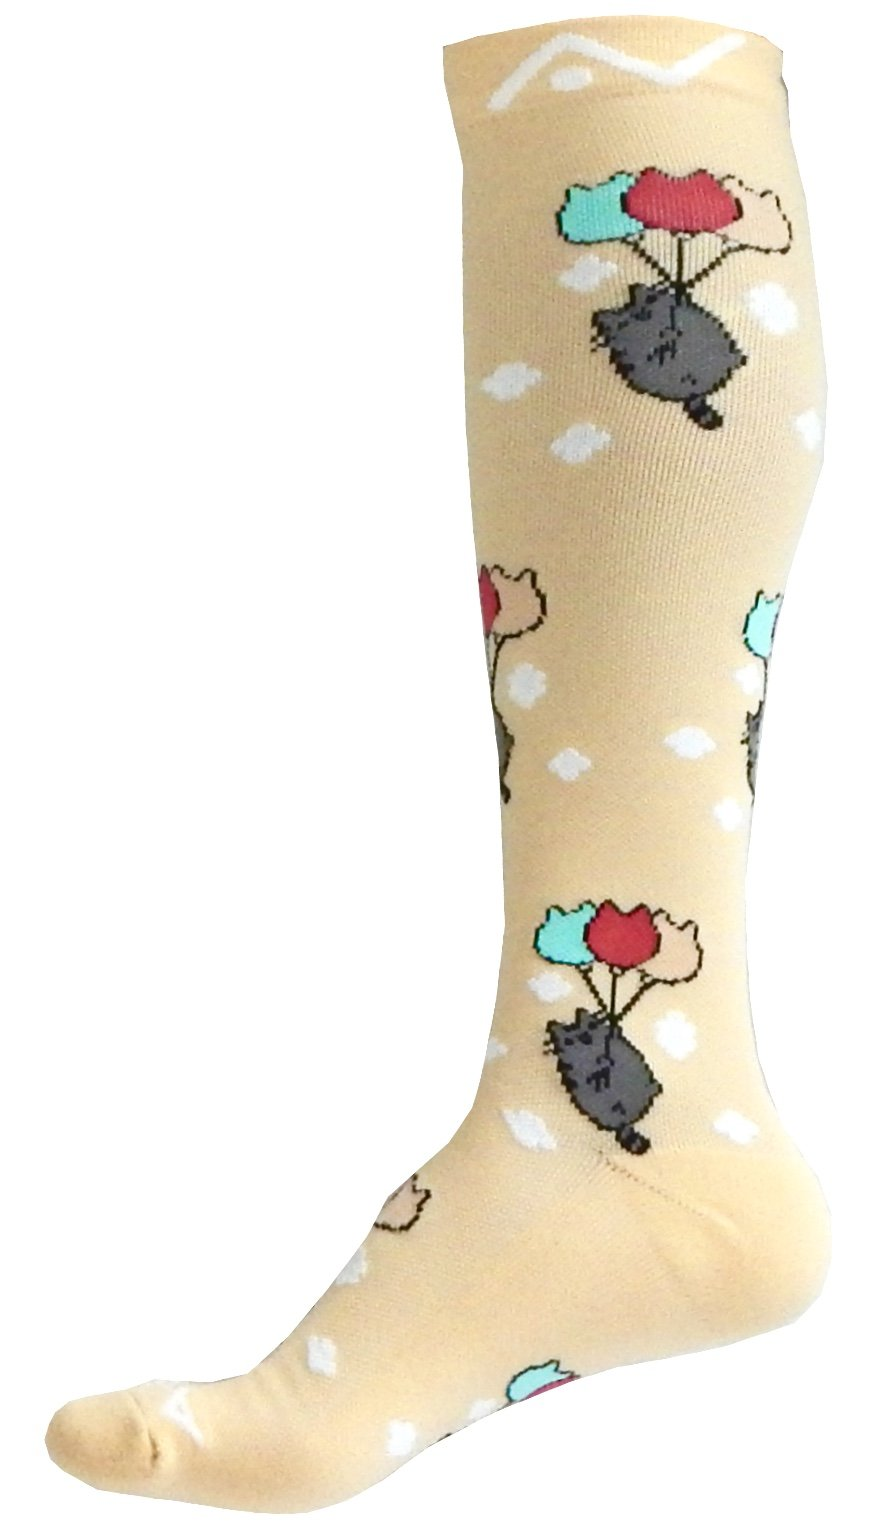 A-Swift Compression Socks (1 Pair) for Women & Men Best for Running, Athletic Sports, Crossfit, Flight Travel - Suits Nurses, Maternity Pregnancy - Below Knee High (Kawaii Cats, Large)